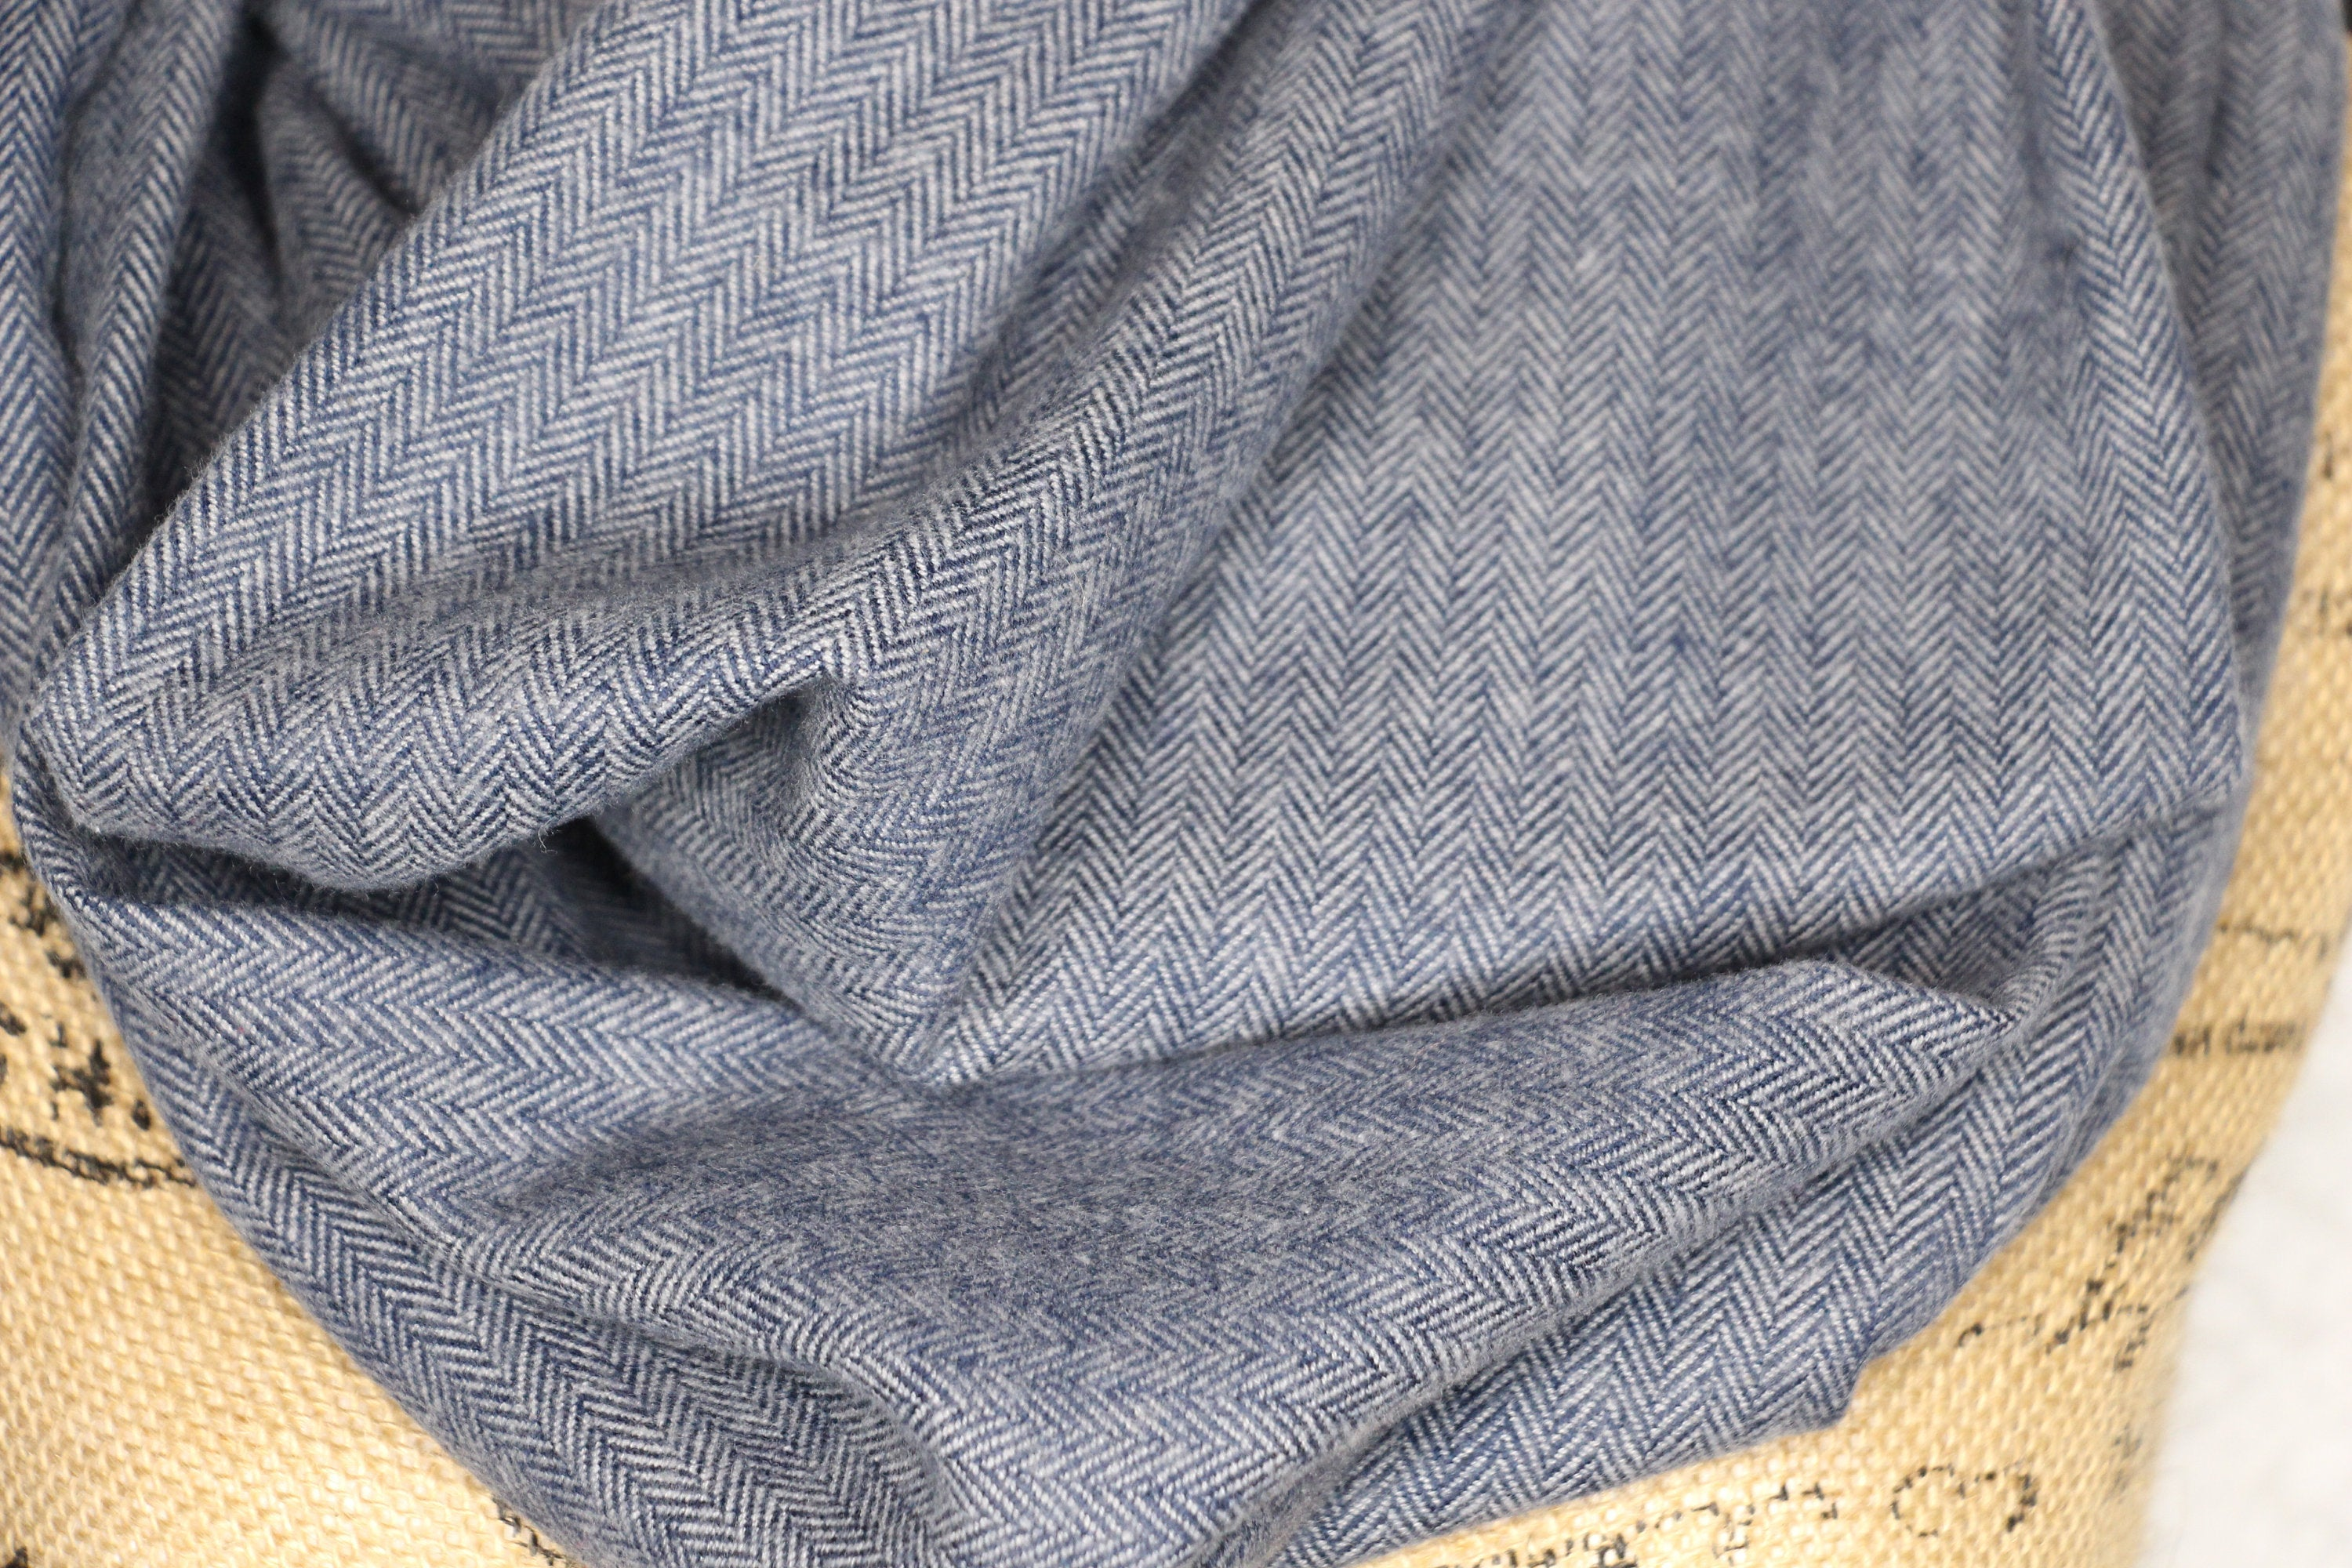 Navy Blue and Gray Small Herringbone Cotton Flannel Plaid Infinity Scarf Wrap Cowl Gator